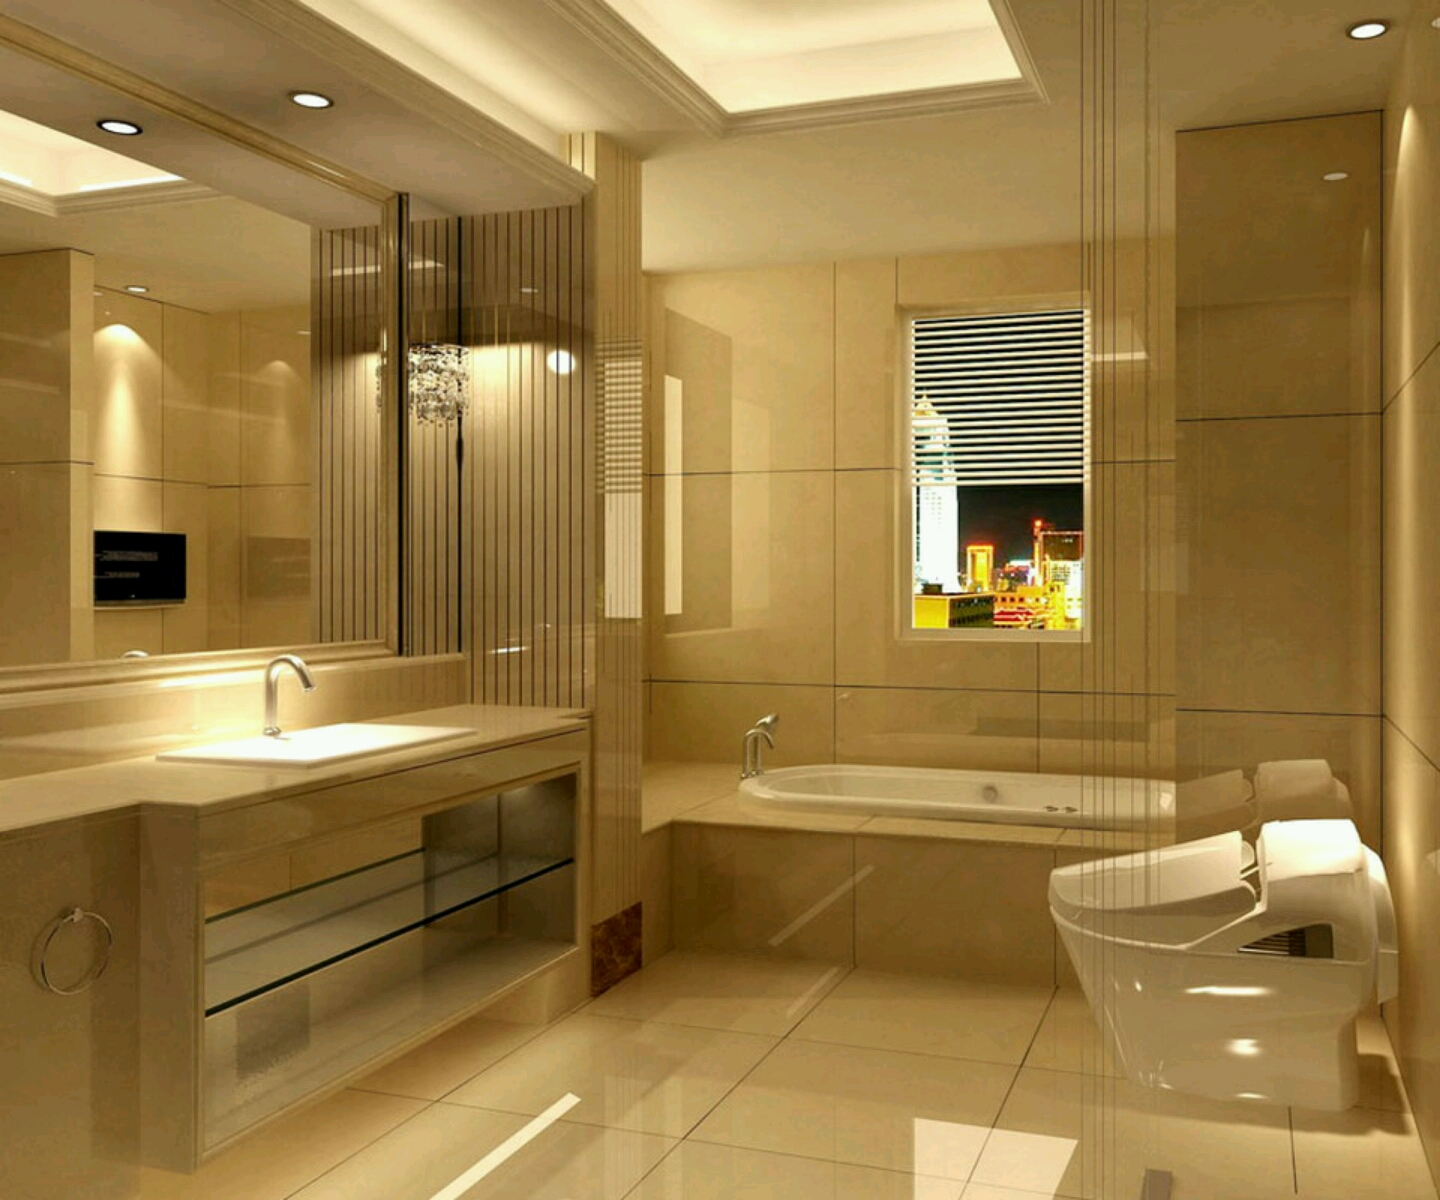 Modern bathrooms setting ideas furniture gallery for Bathroom designs pictures